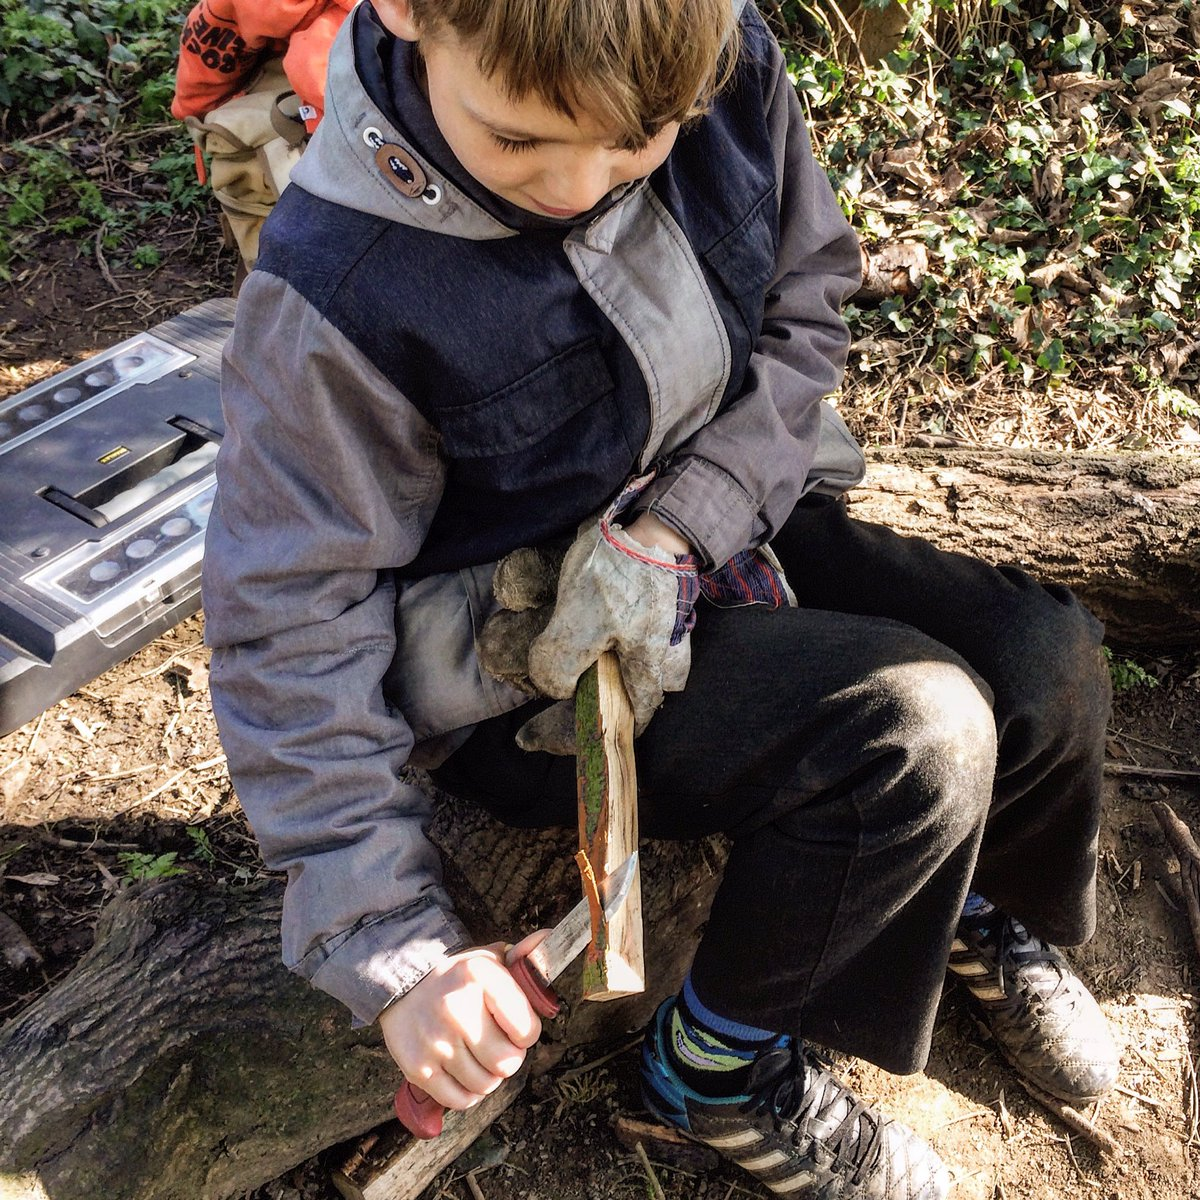 Lovely knife skills today at @todwickprimary @CultureLeisure @ForestSchools #forestschools <br>http://pic.twitter.com/2e8YhIdqVm